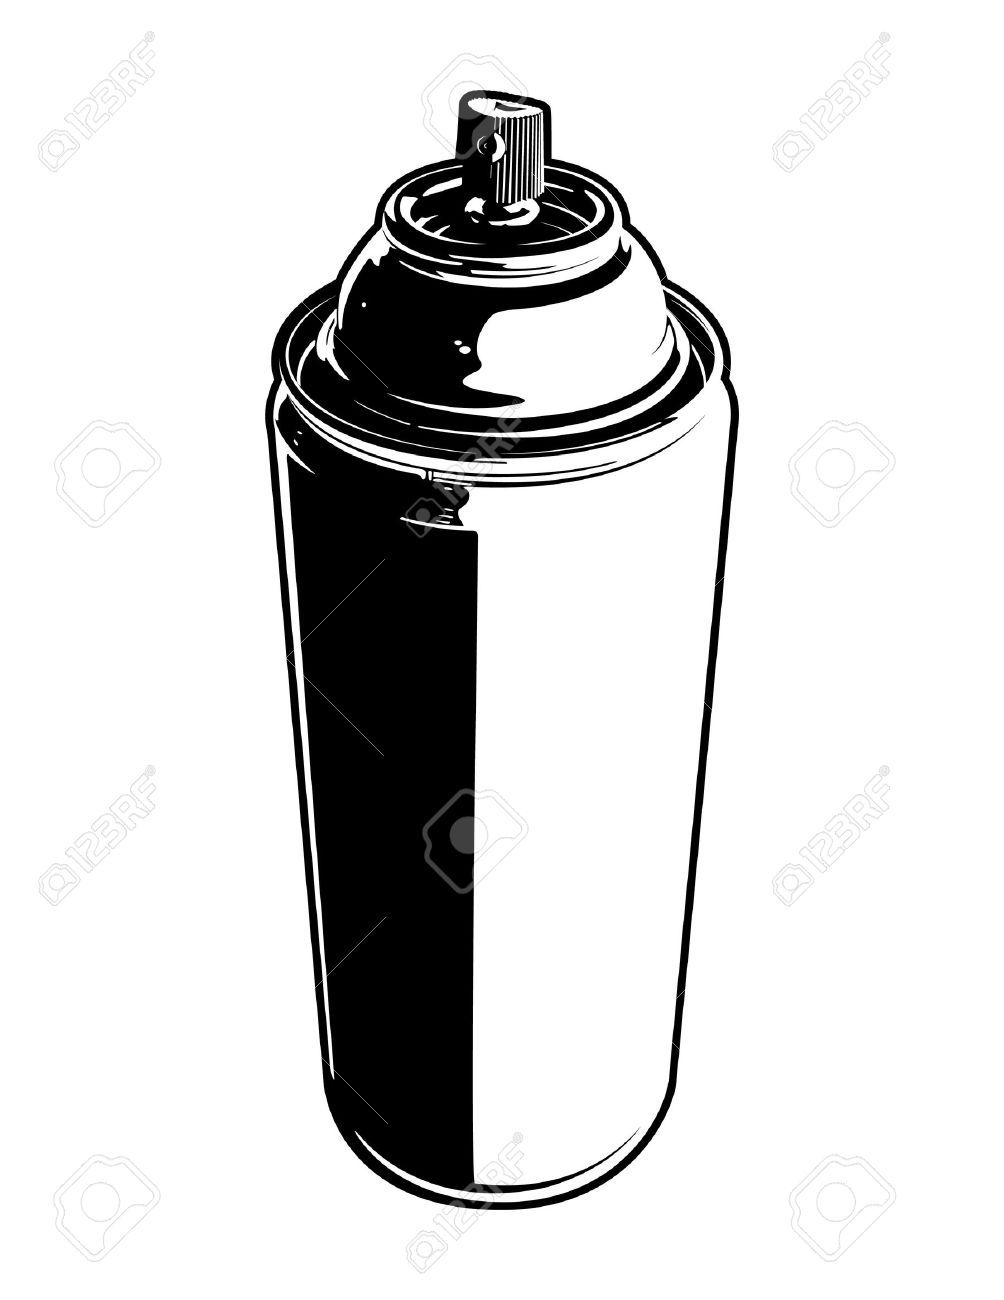 Spray paint can clipart 2 » Clipart Portal.